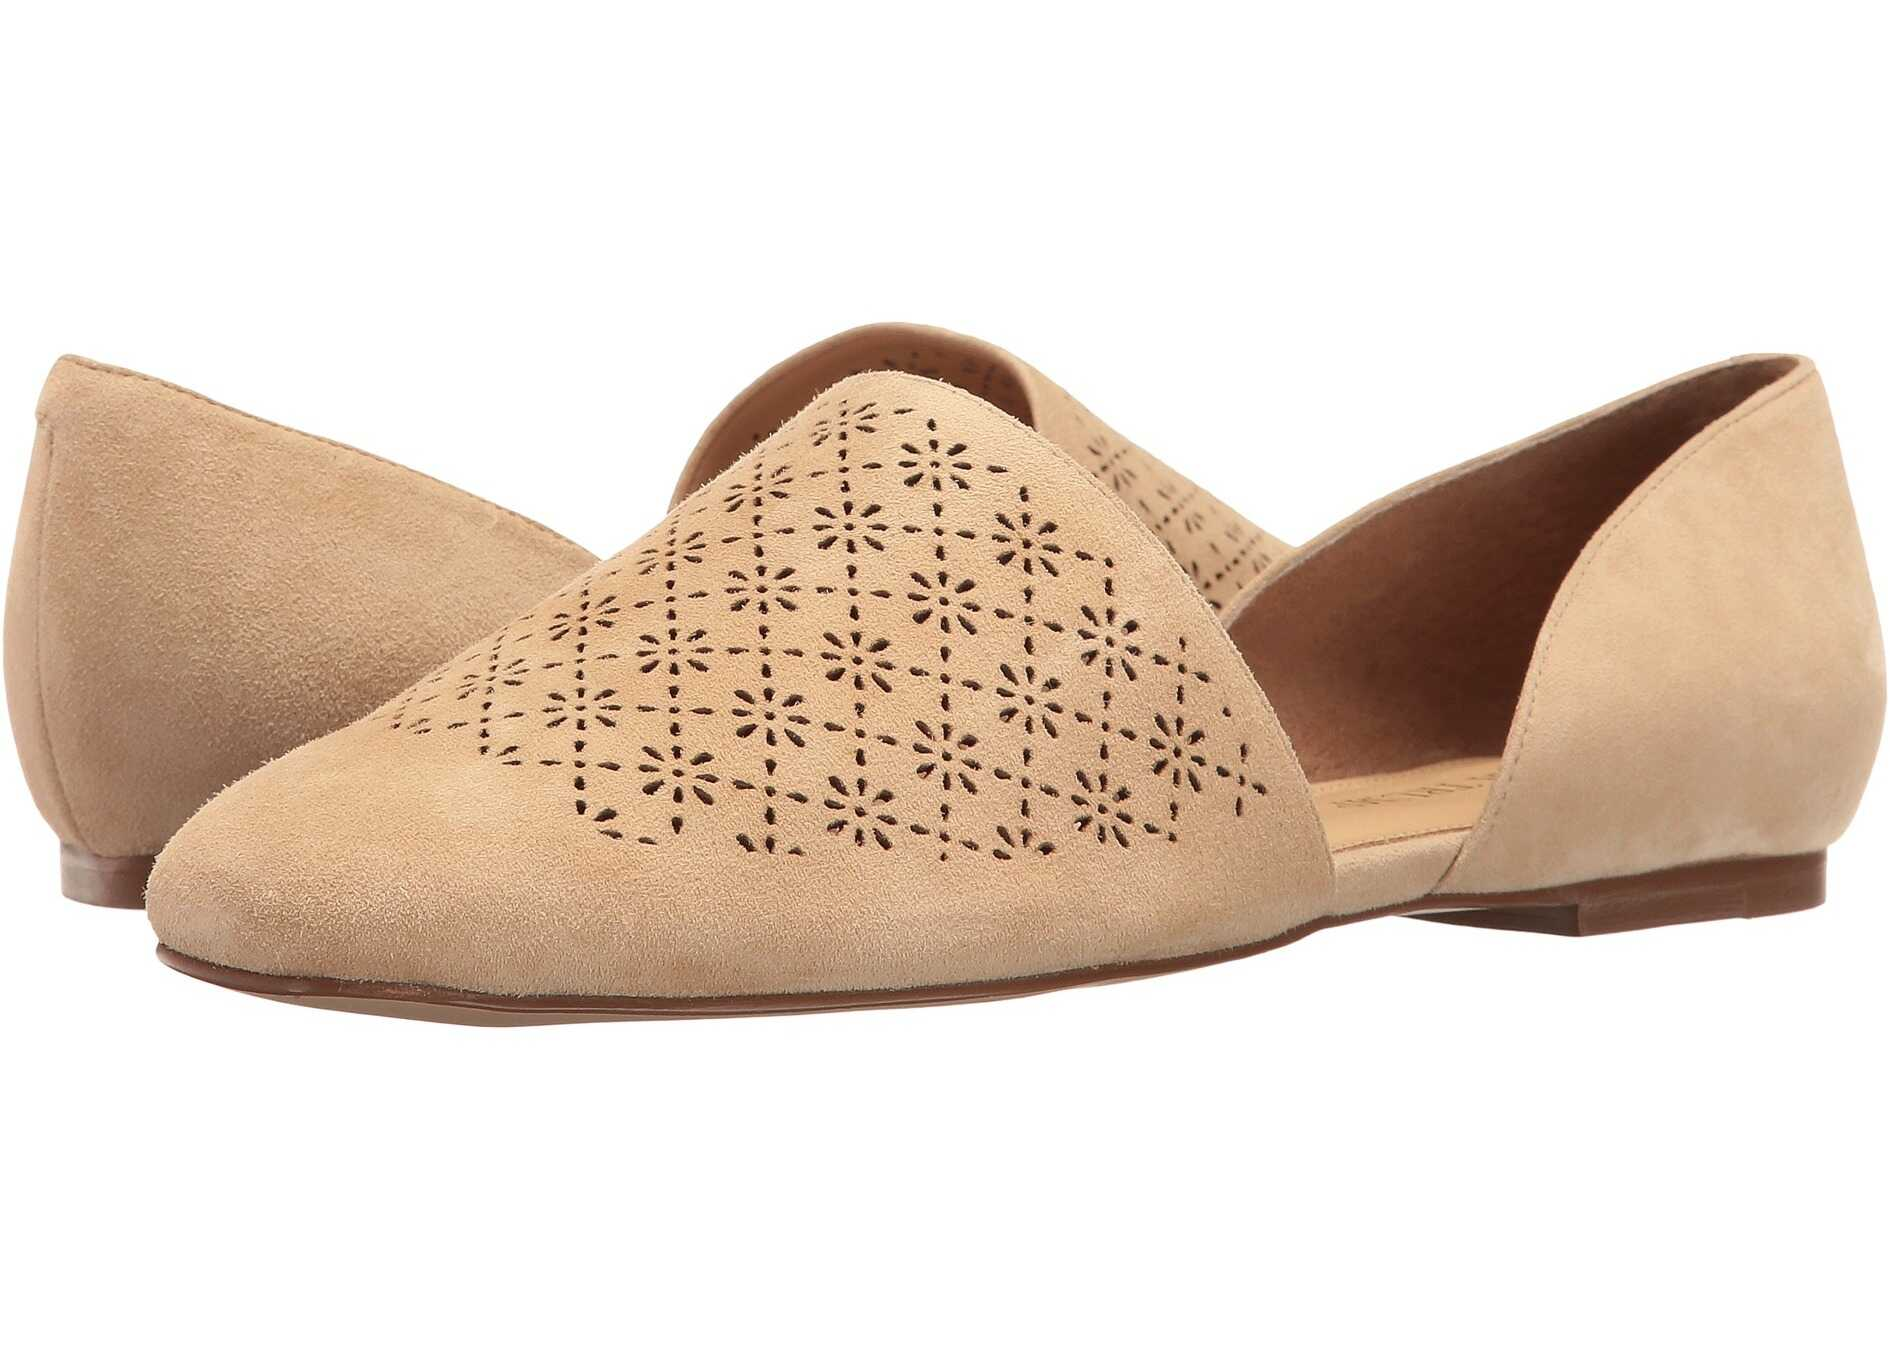 Ivanka Trump Evana Light Natural FH Leather Suede